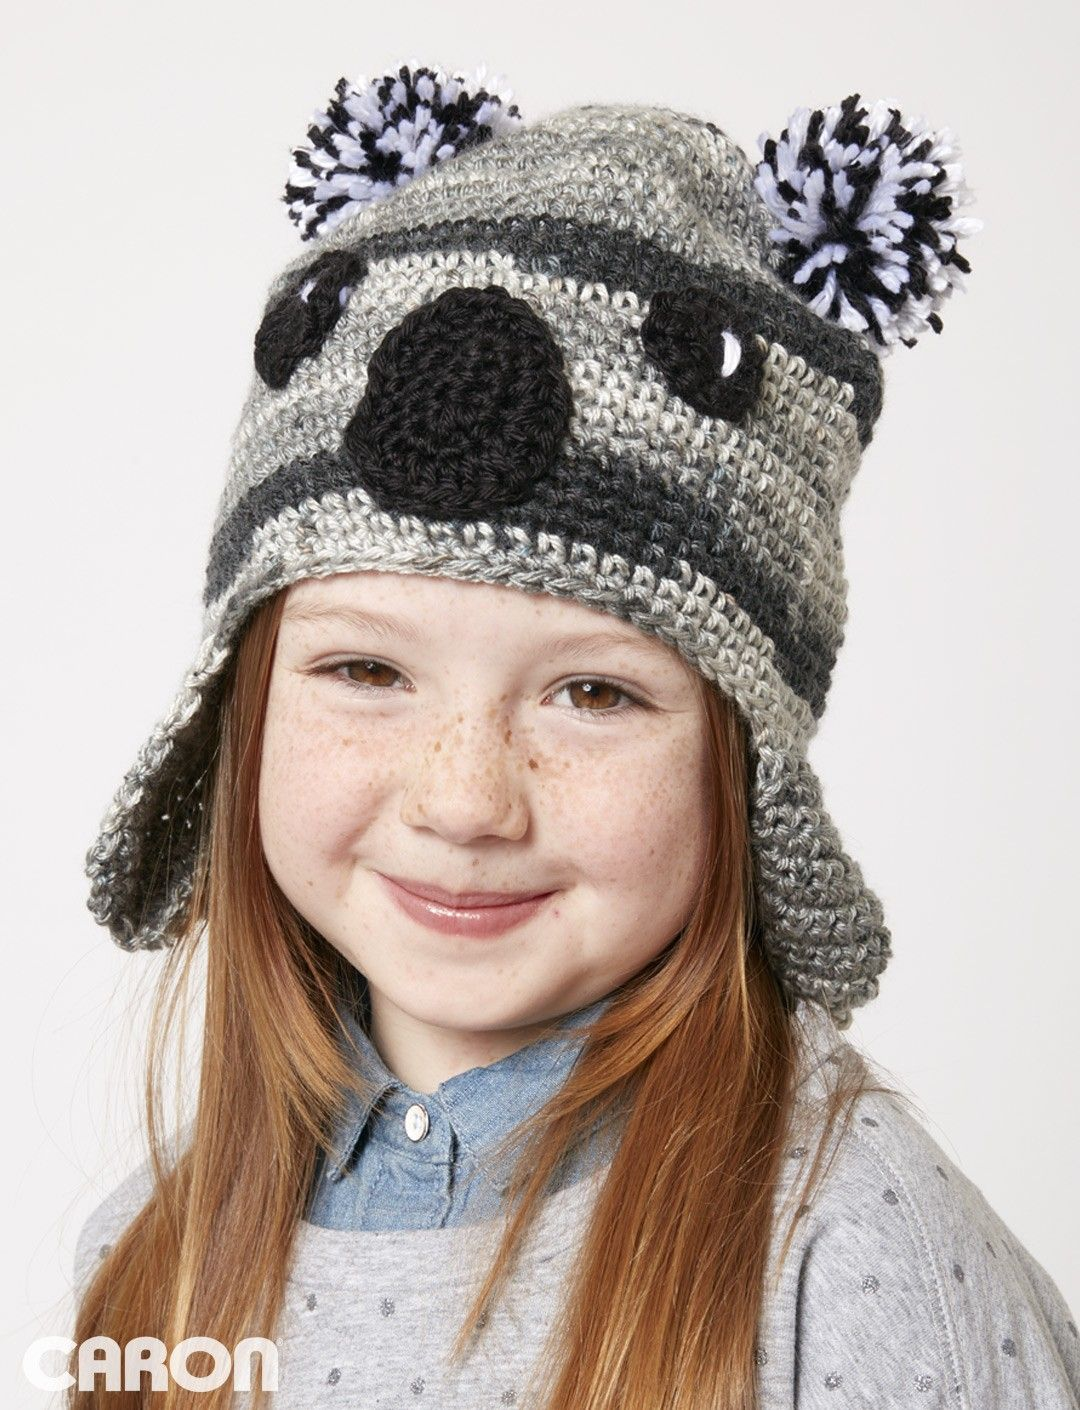 Yarnspirations.com - Caron Koala-ty Hat - Patterns | Yarnspirations ...